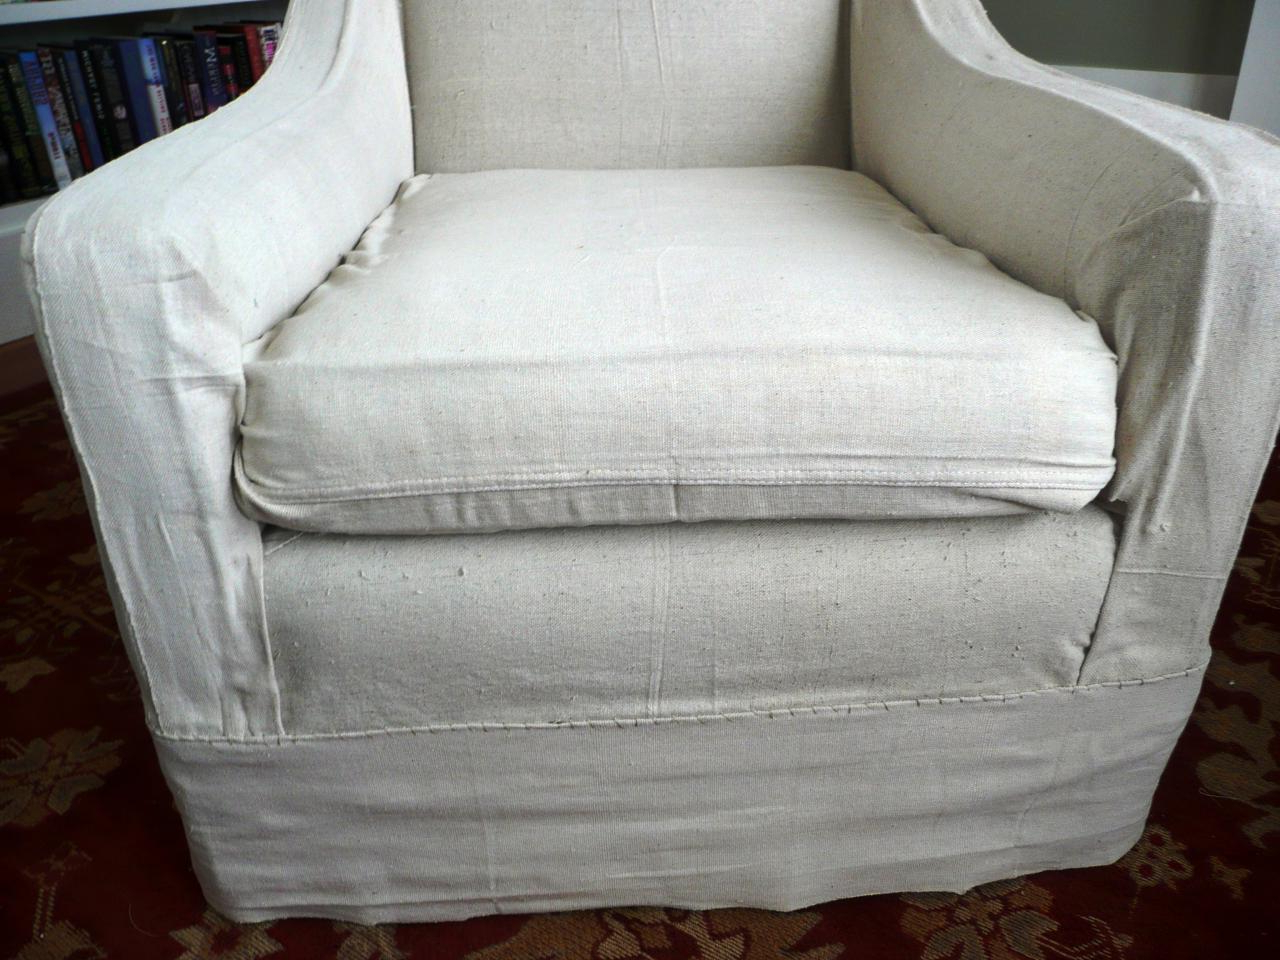 Sofa And Chair Covers With Regard To Most Recently Released Tips: Soft T Cushion Chair Slipcovers For Elegant Interior Furniture (Gallery 20 of 20)